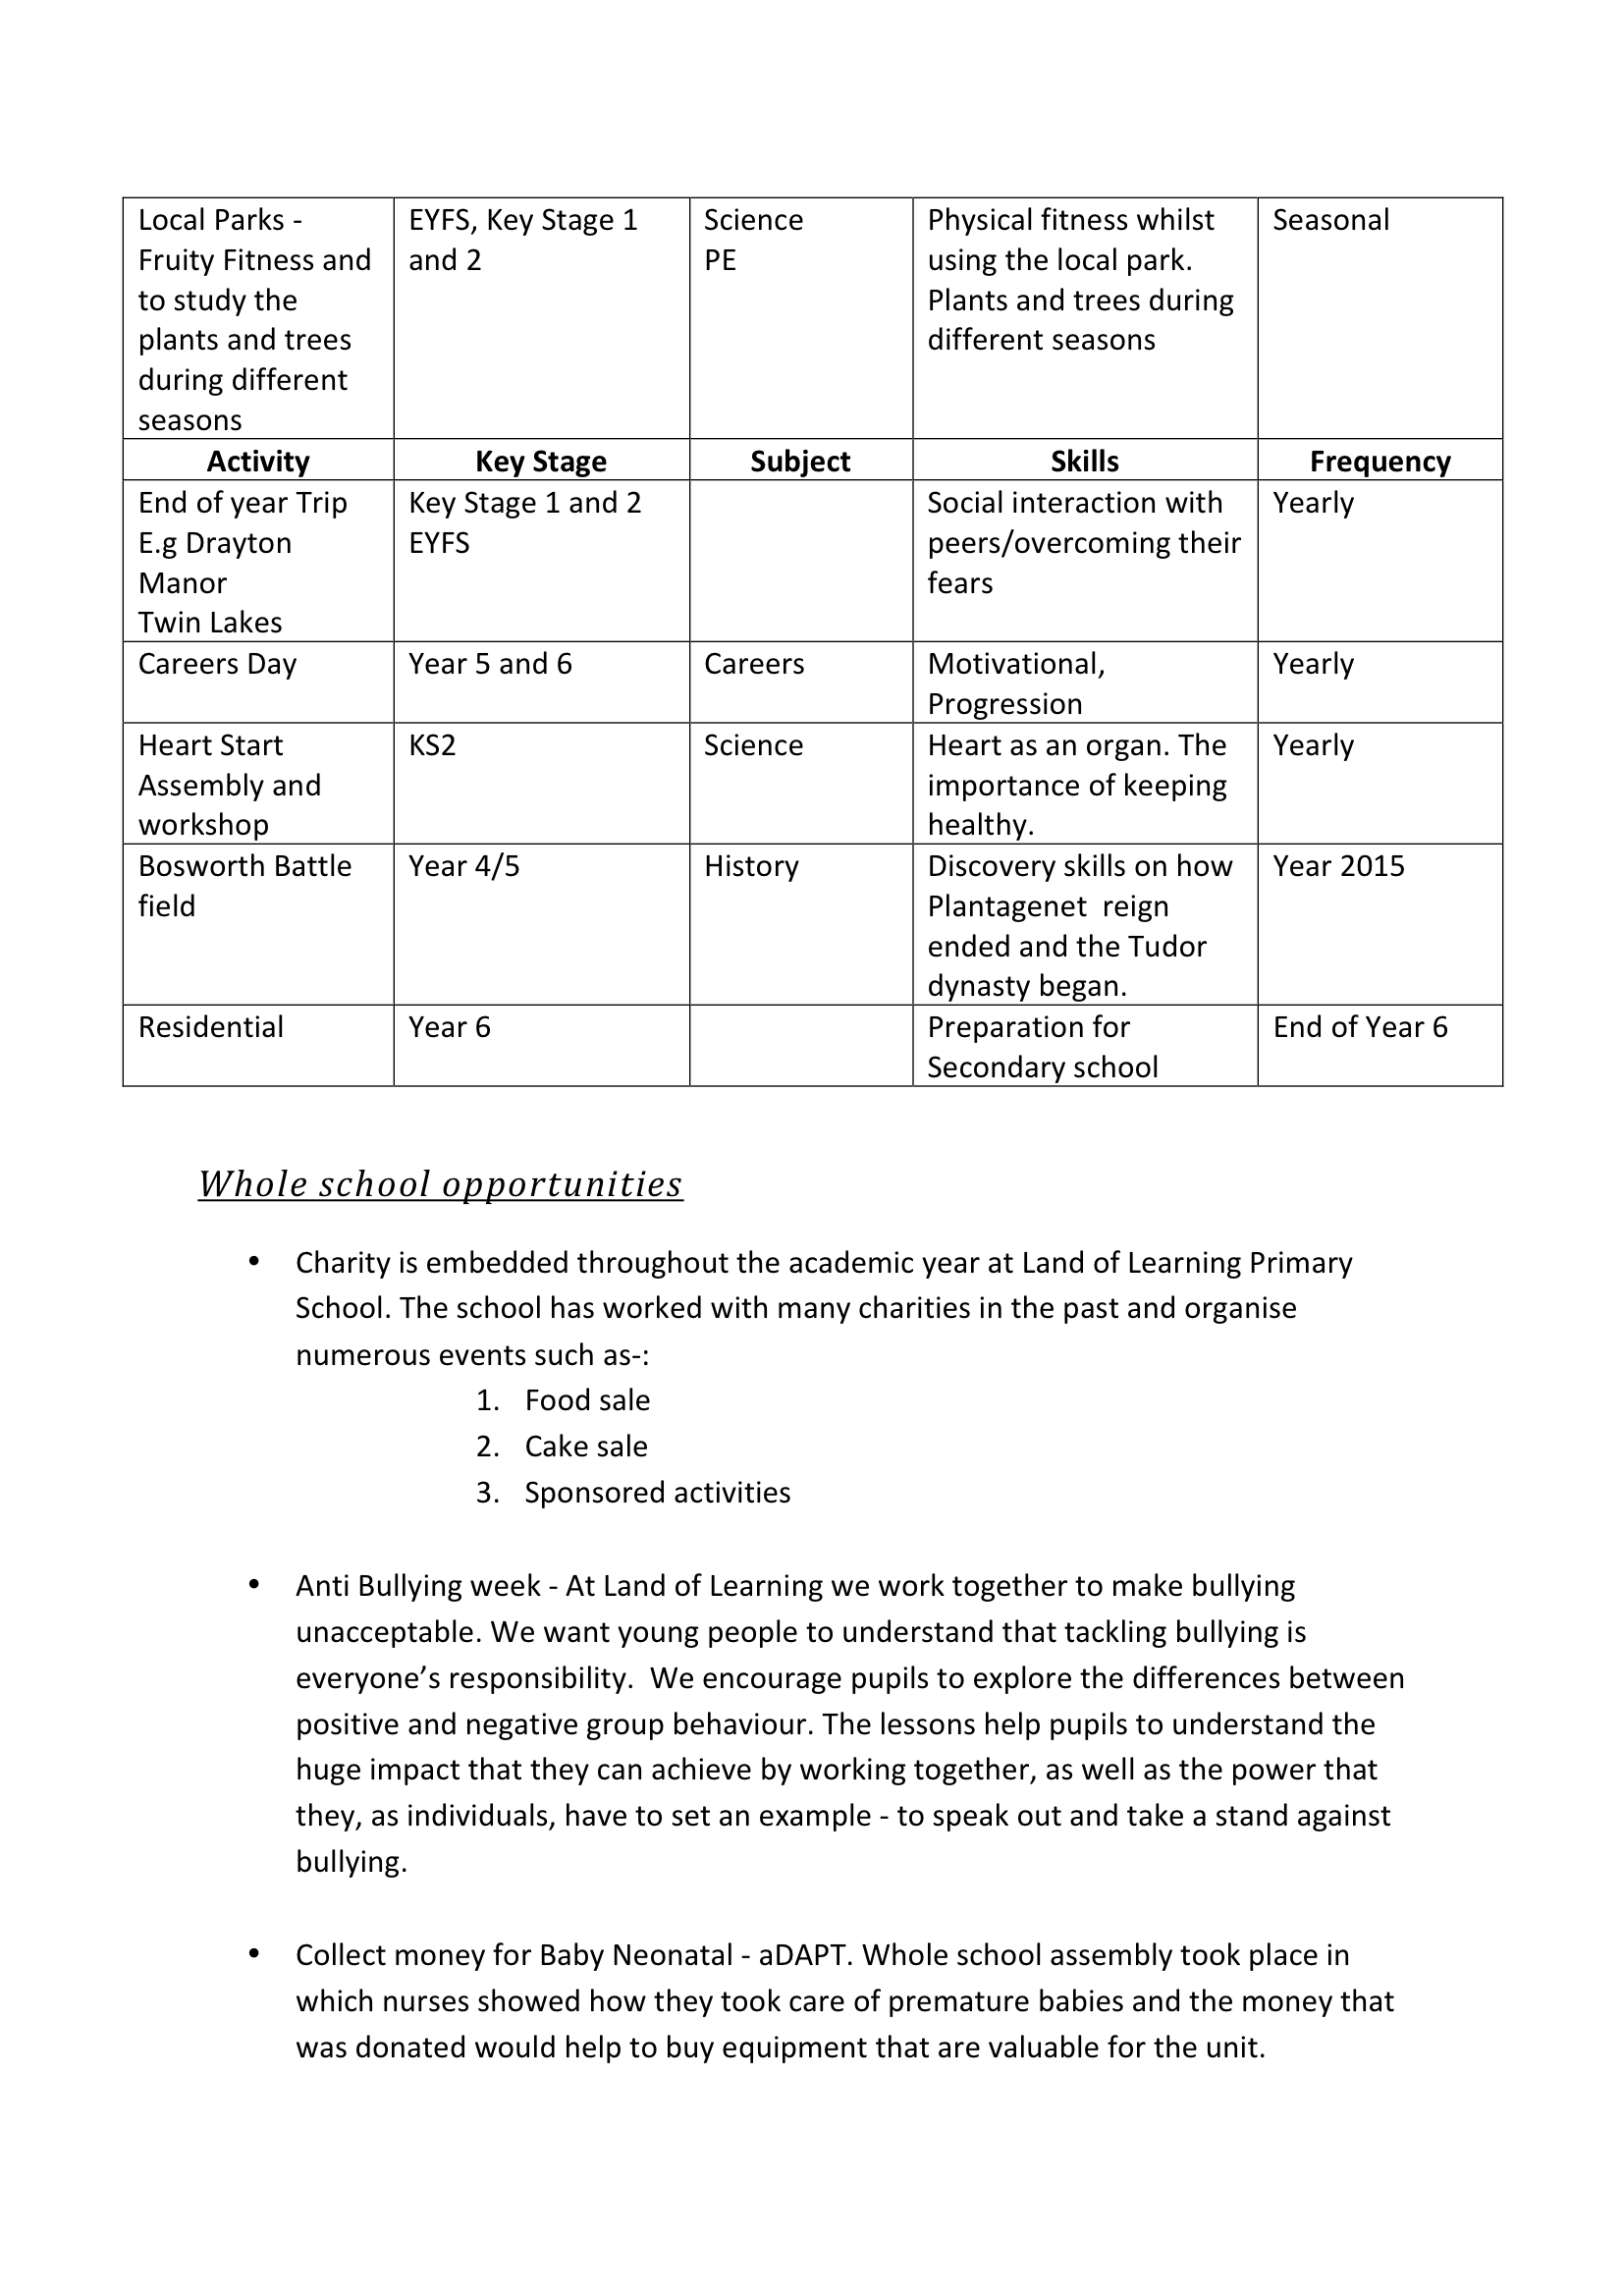 Enriched Curriculum- clubs and activities 3